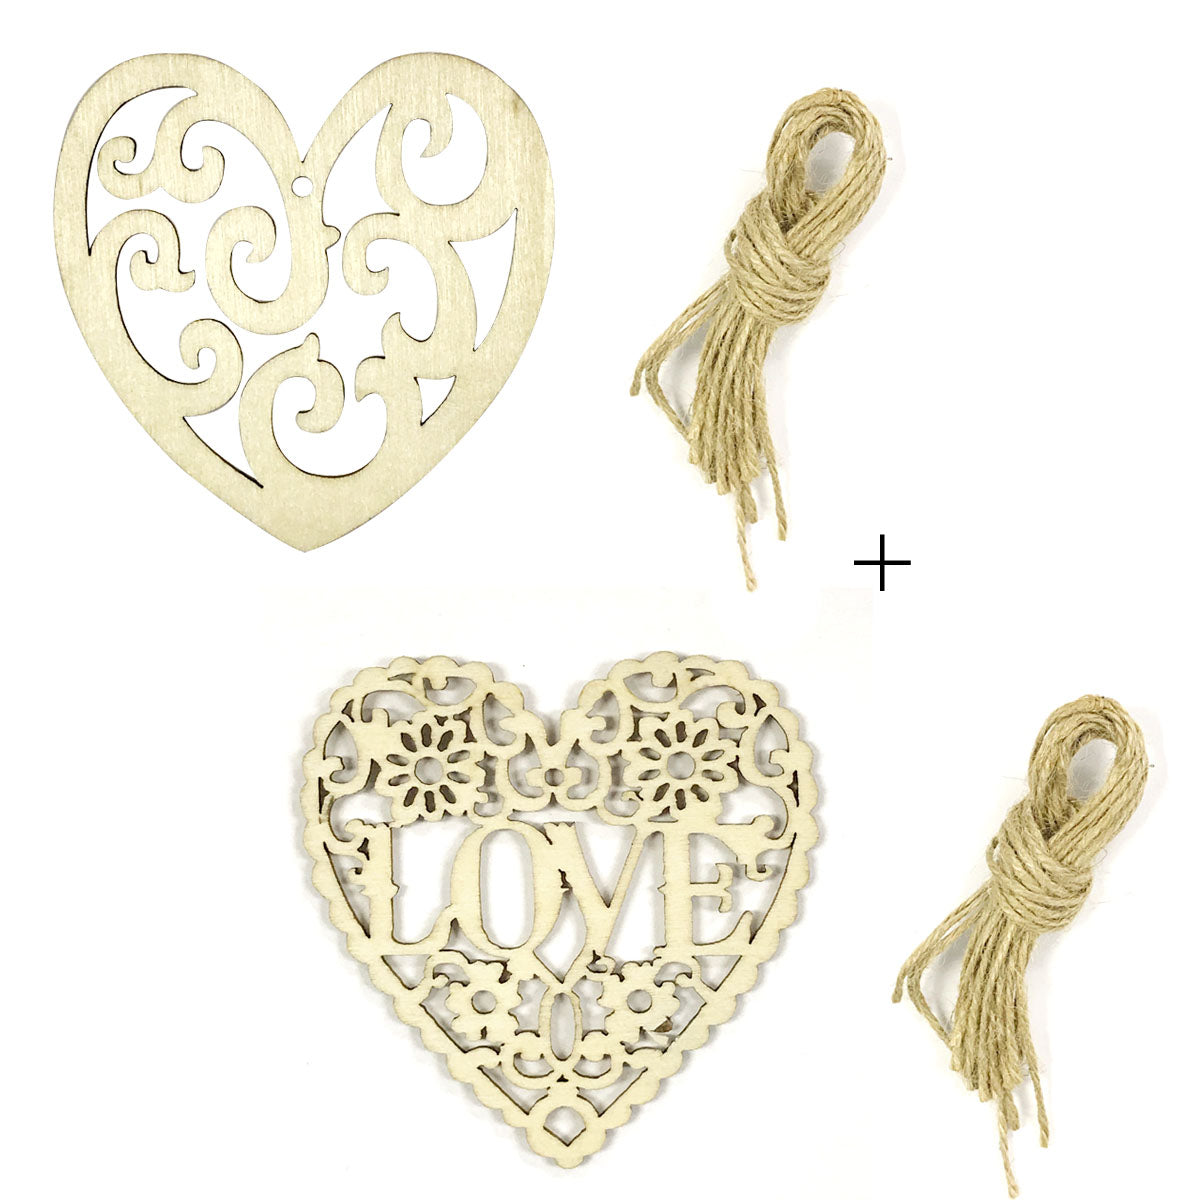 Wrapables Wooden Heart Ornament Hanging Love Decoration (Set of 20)